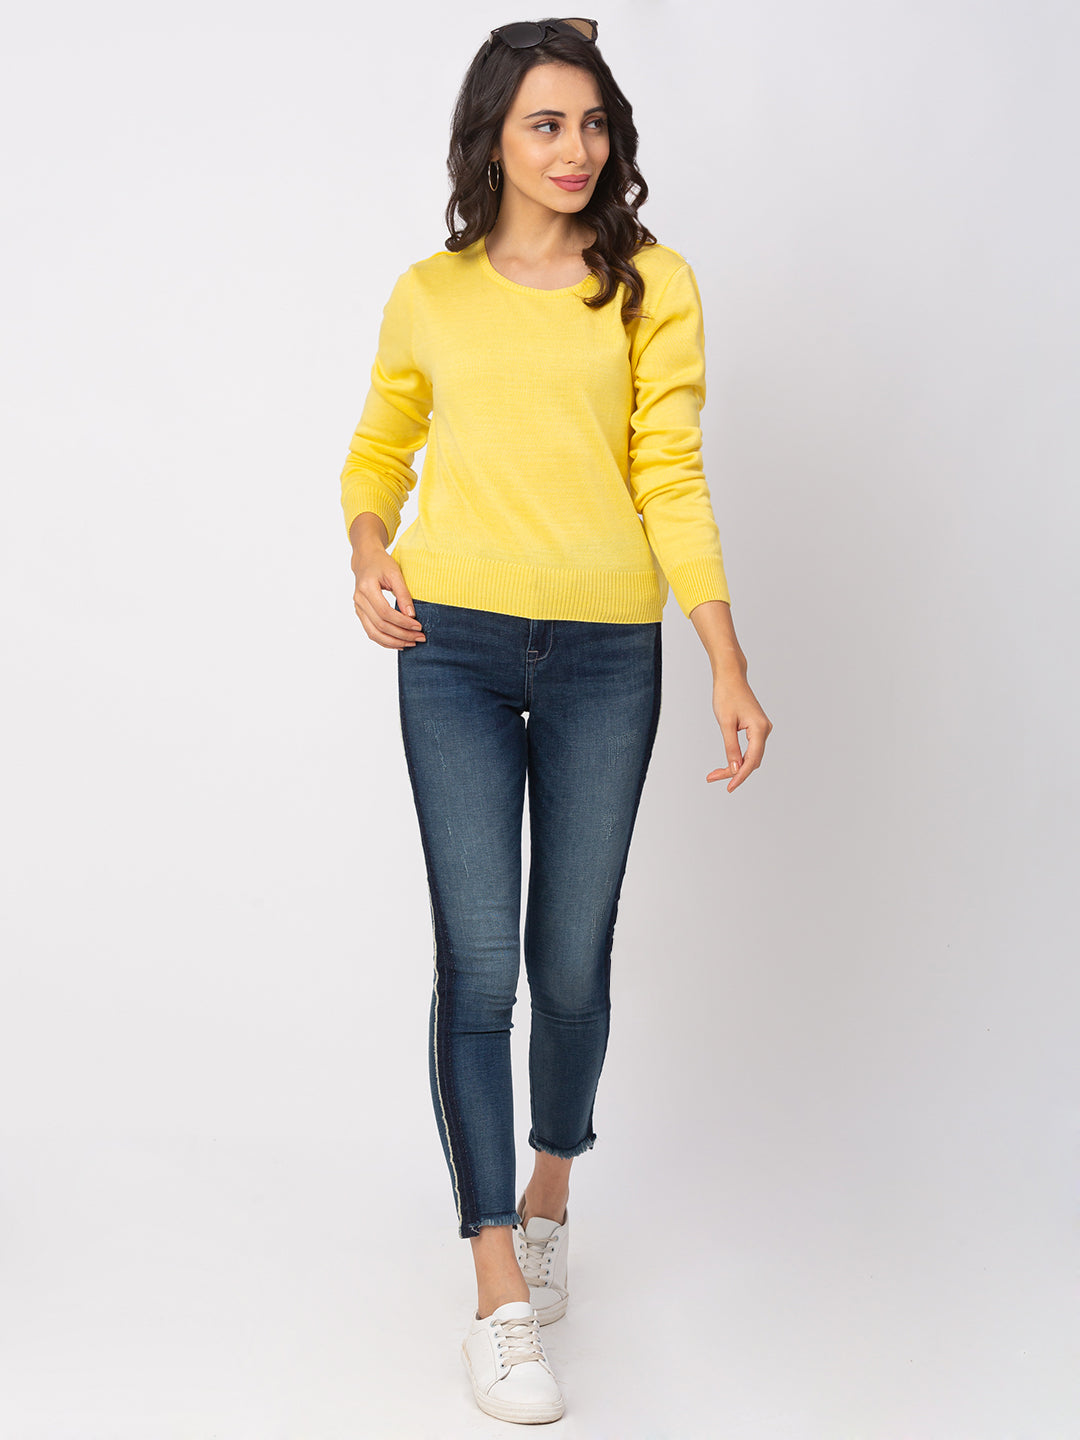 Globus Lemon Yellow Solid Sweater